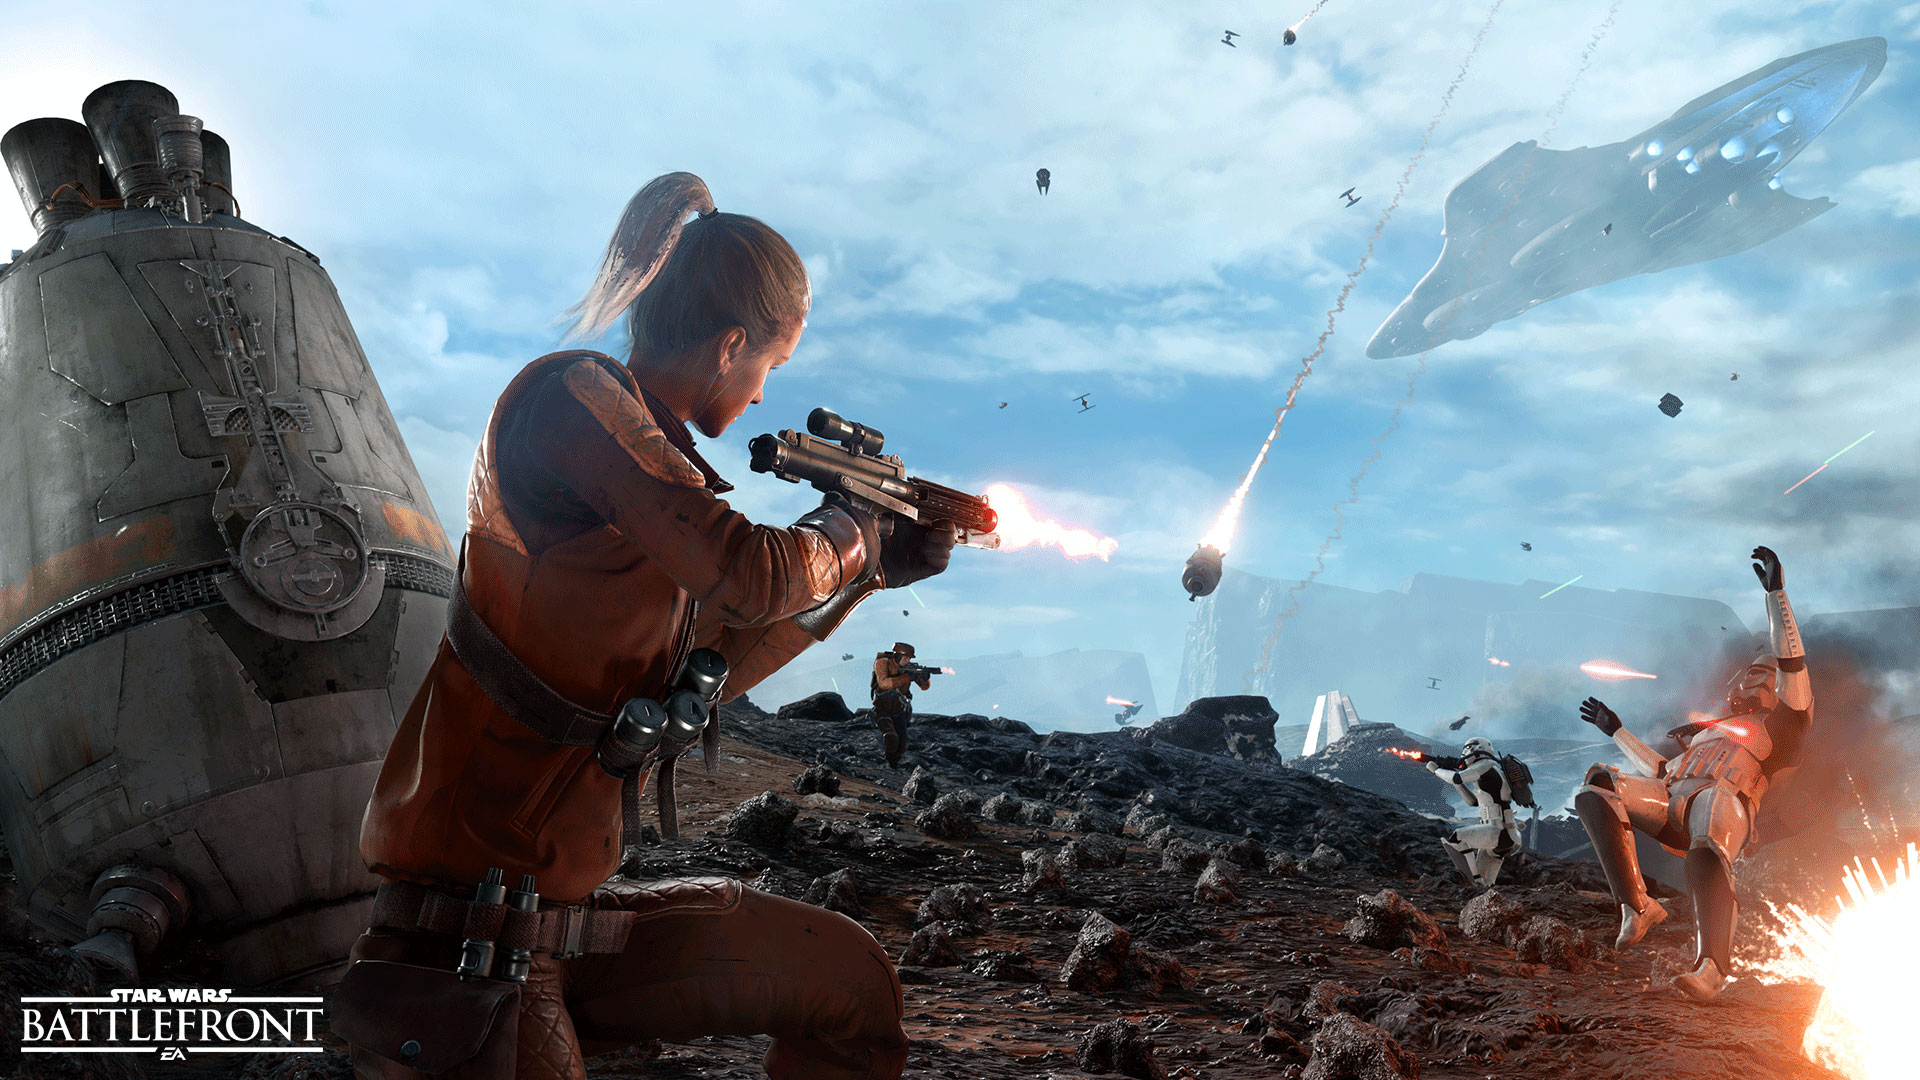 Star Wars Battlefront PC Errors And Fixes: Black Screen